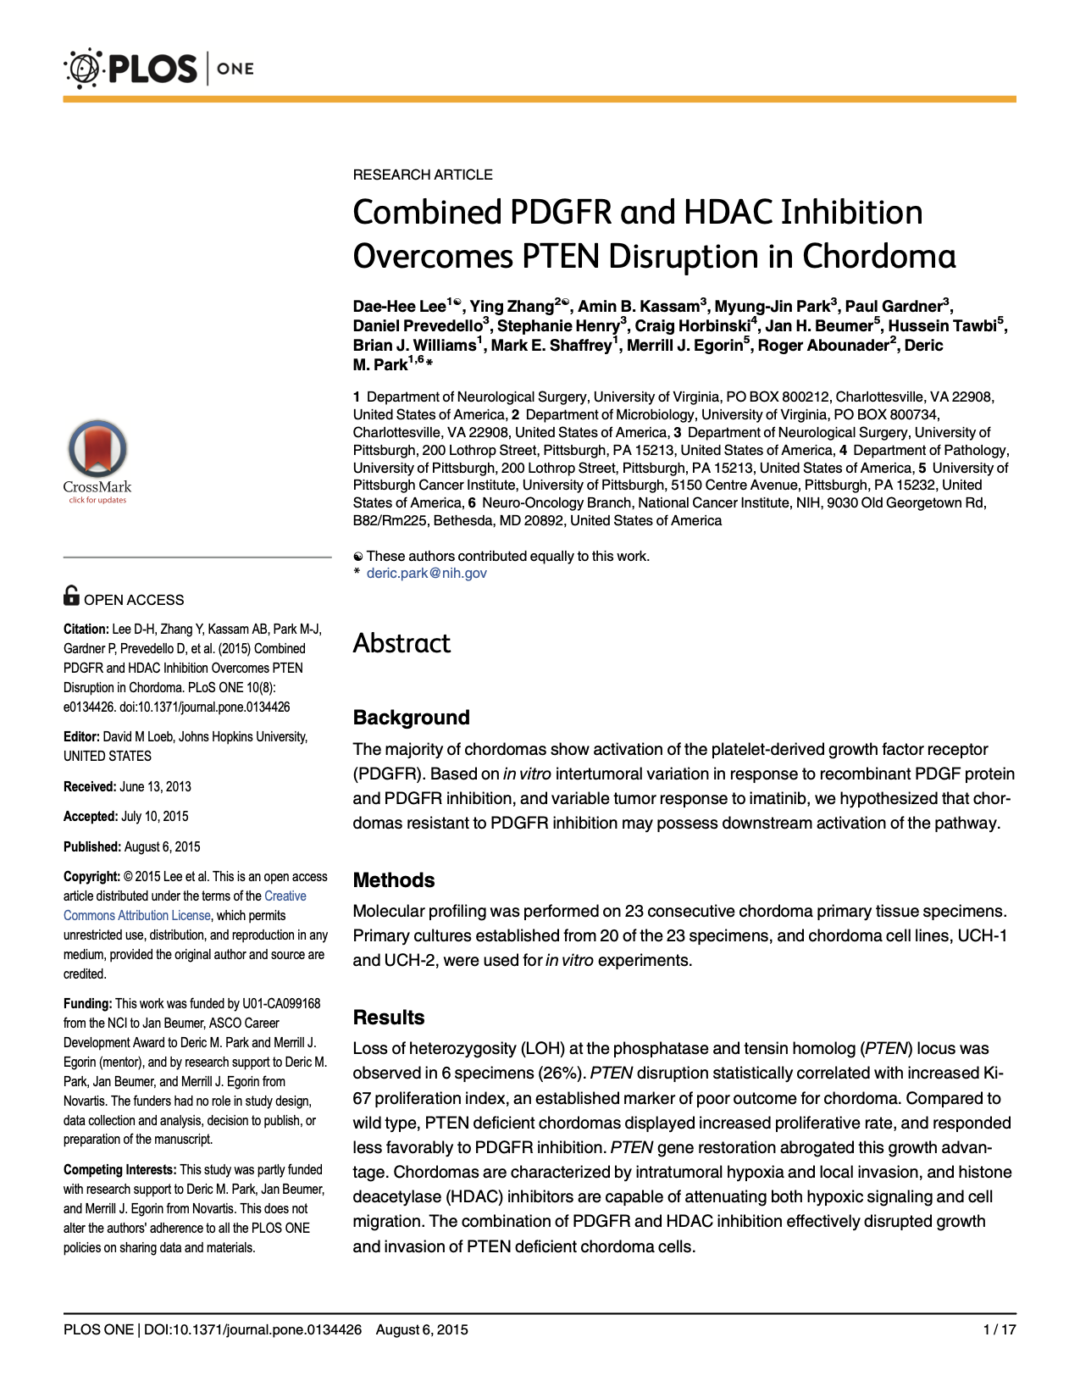 Combined PDGFR and HDAC Inhibition Overcomes PTEN Disruption in Chordoma